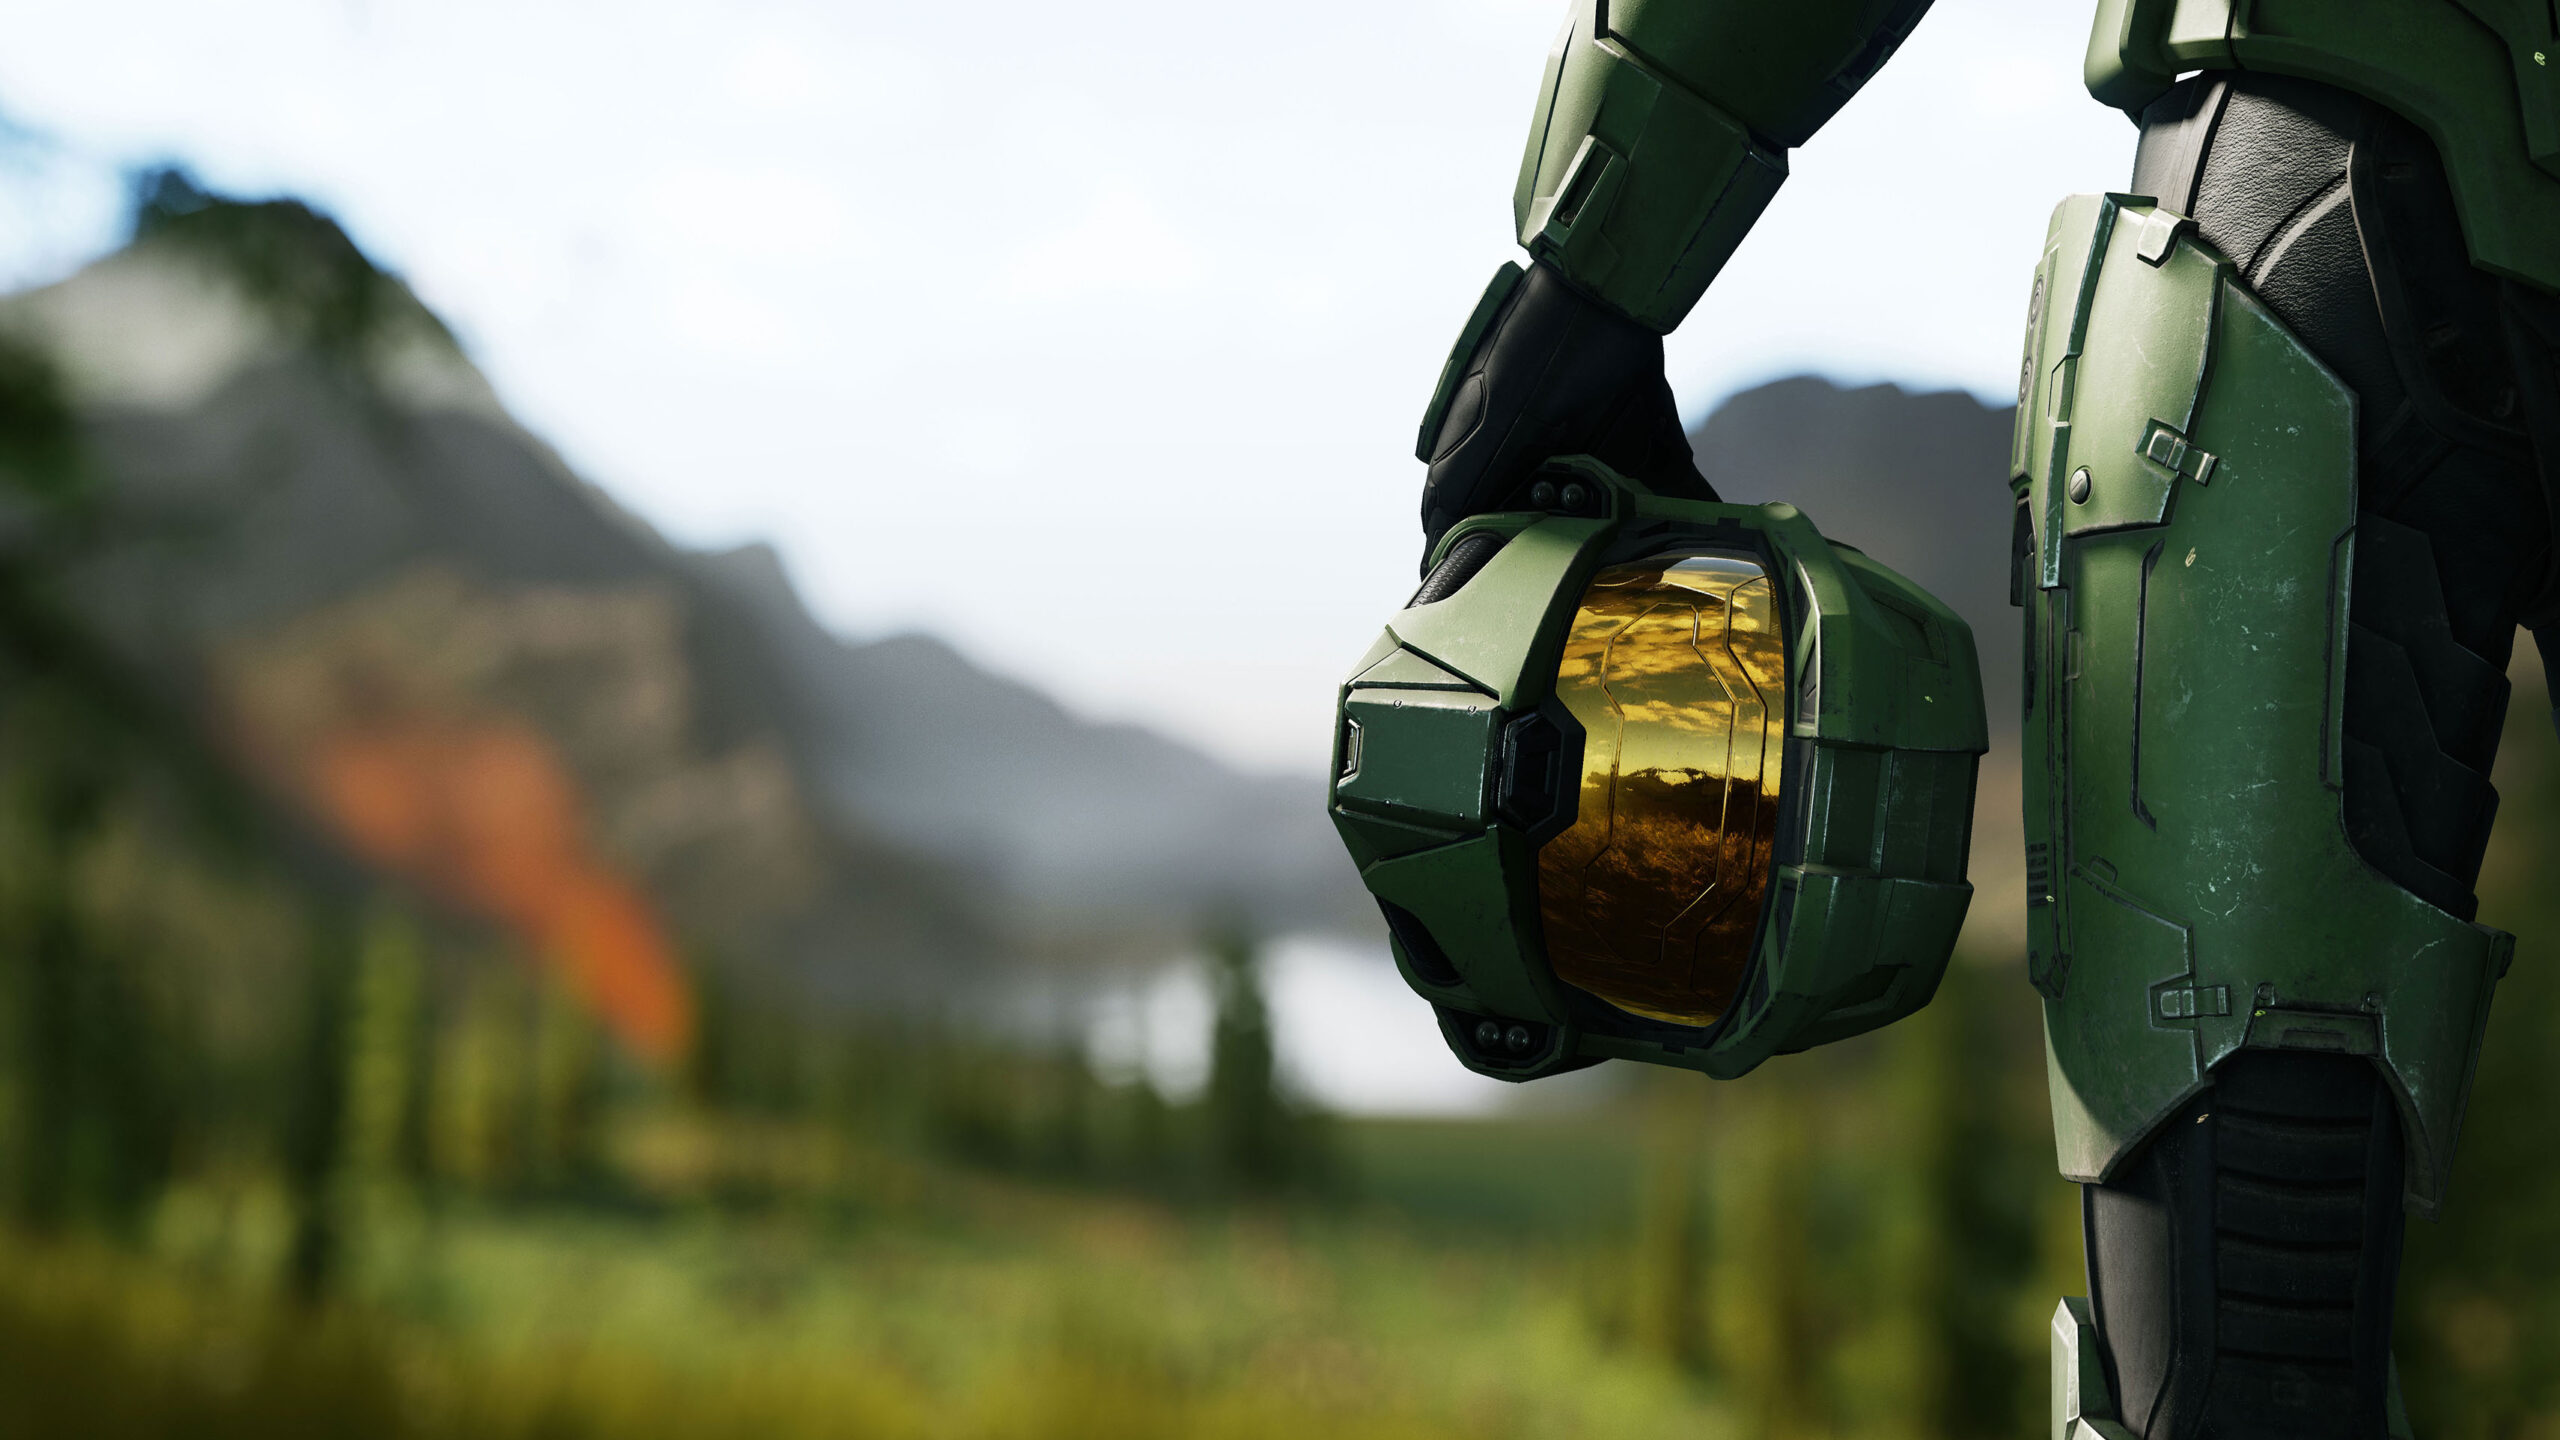 halo-infinite-beta-rumors:-sign-up-for-a-chance-to-play-early